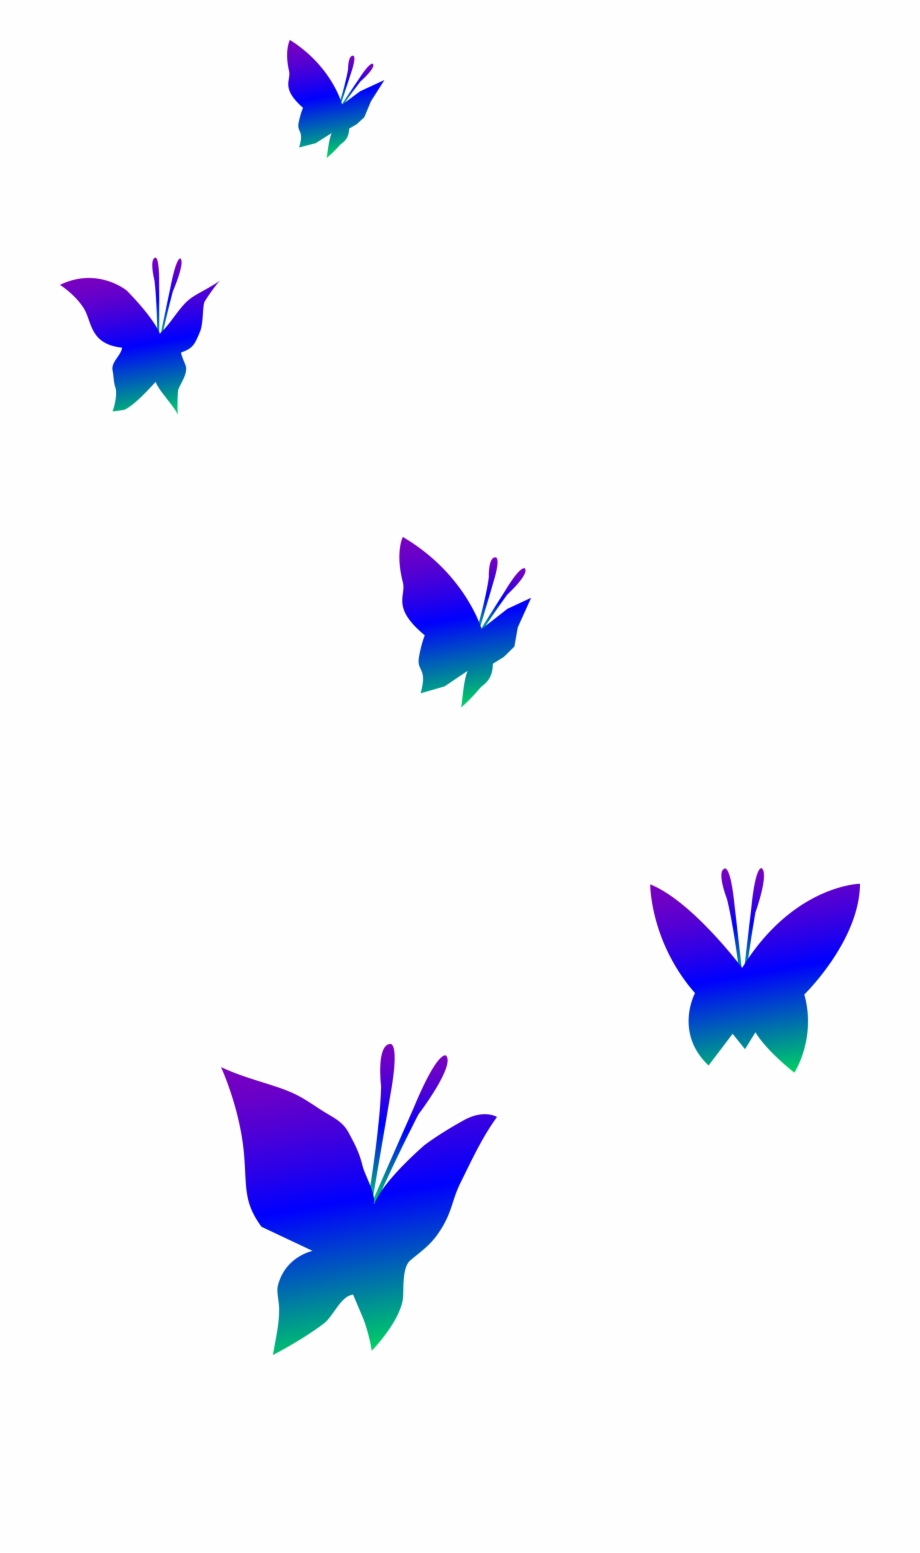 Flying butterfly clipart image png black and white library Butterflies Flying Butterfly Clipart Clipartfox - Moving Clip Art ... png black and white library